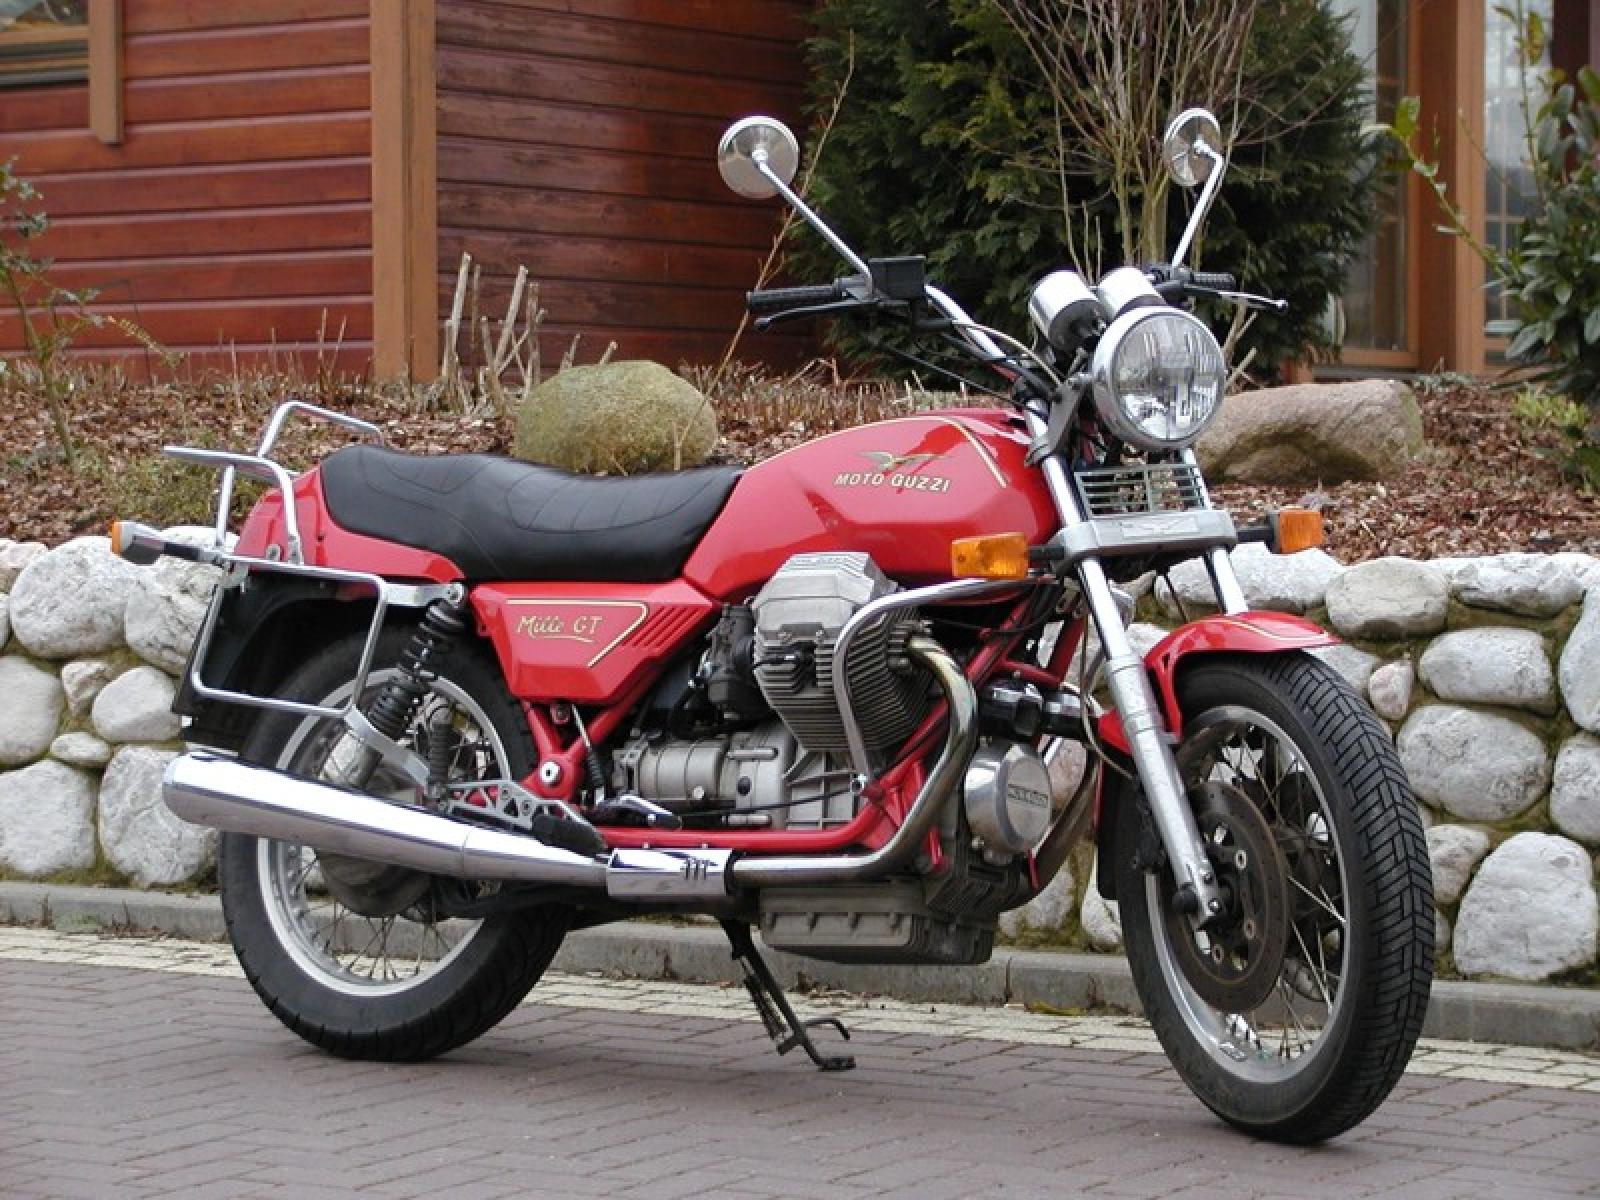 1987 Moto Guzzi Mille GT (reduced effect) #1